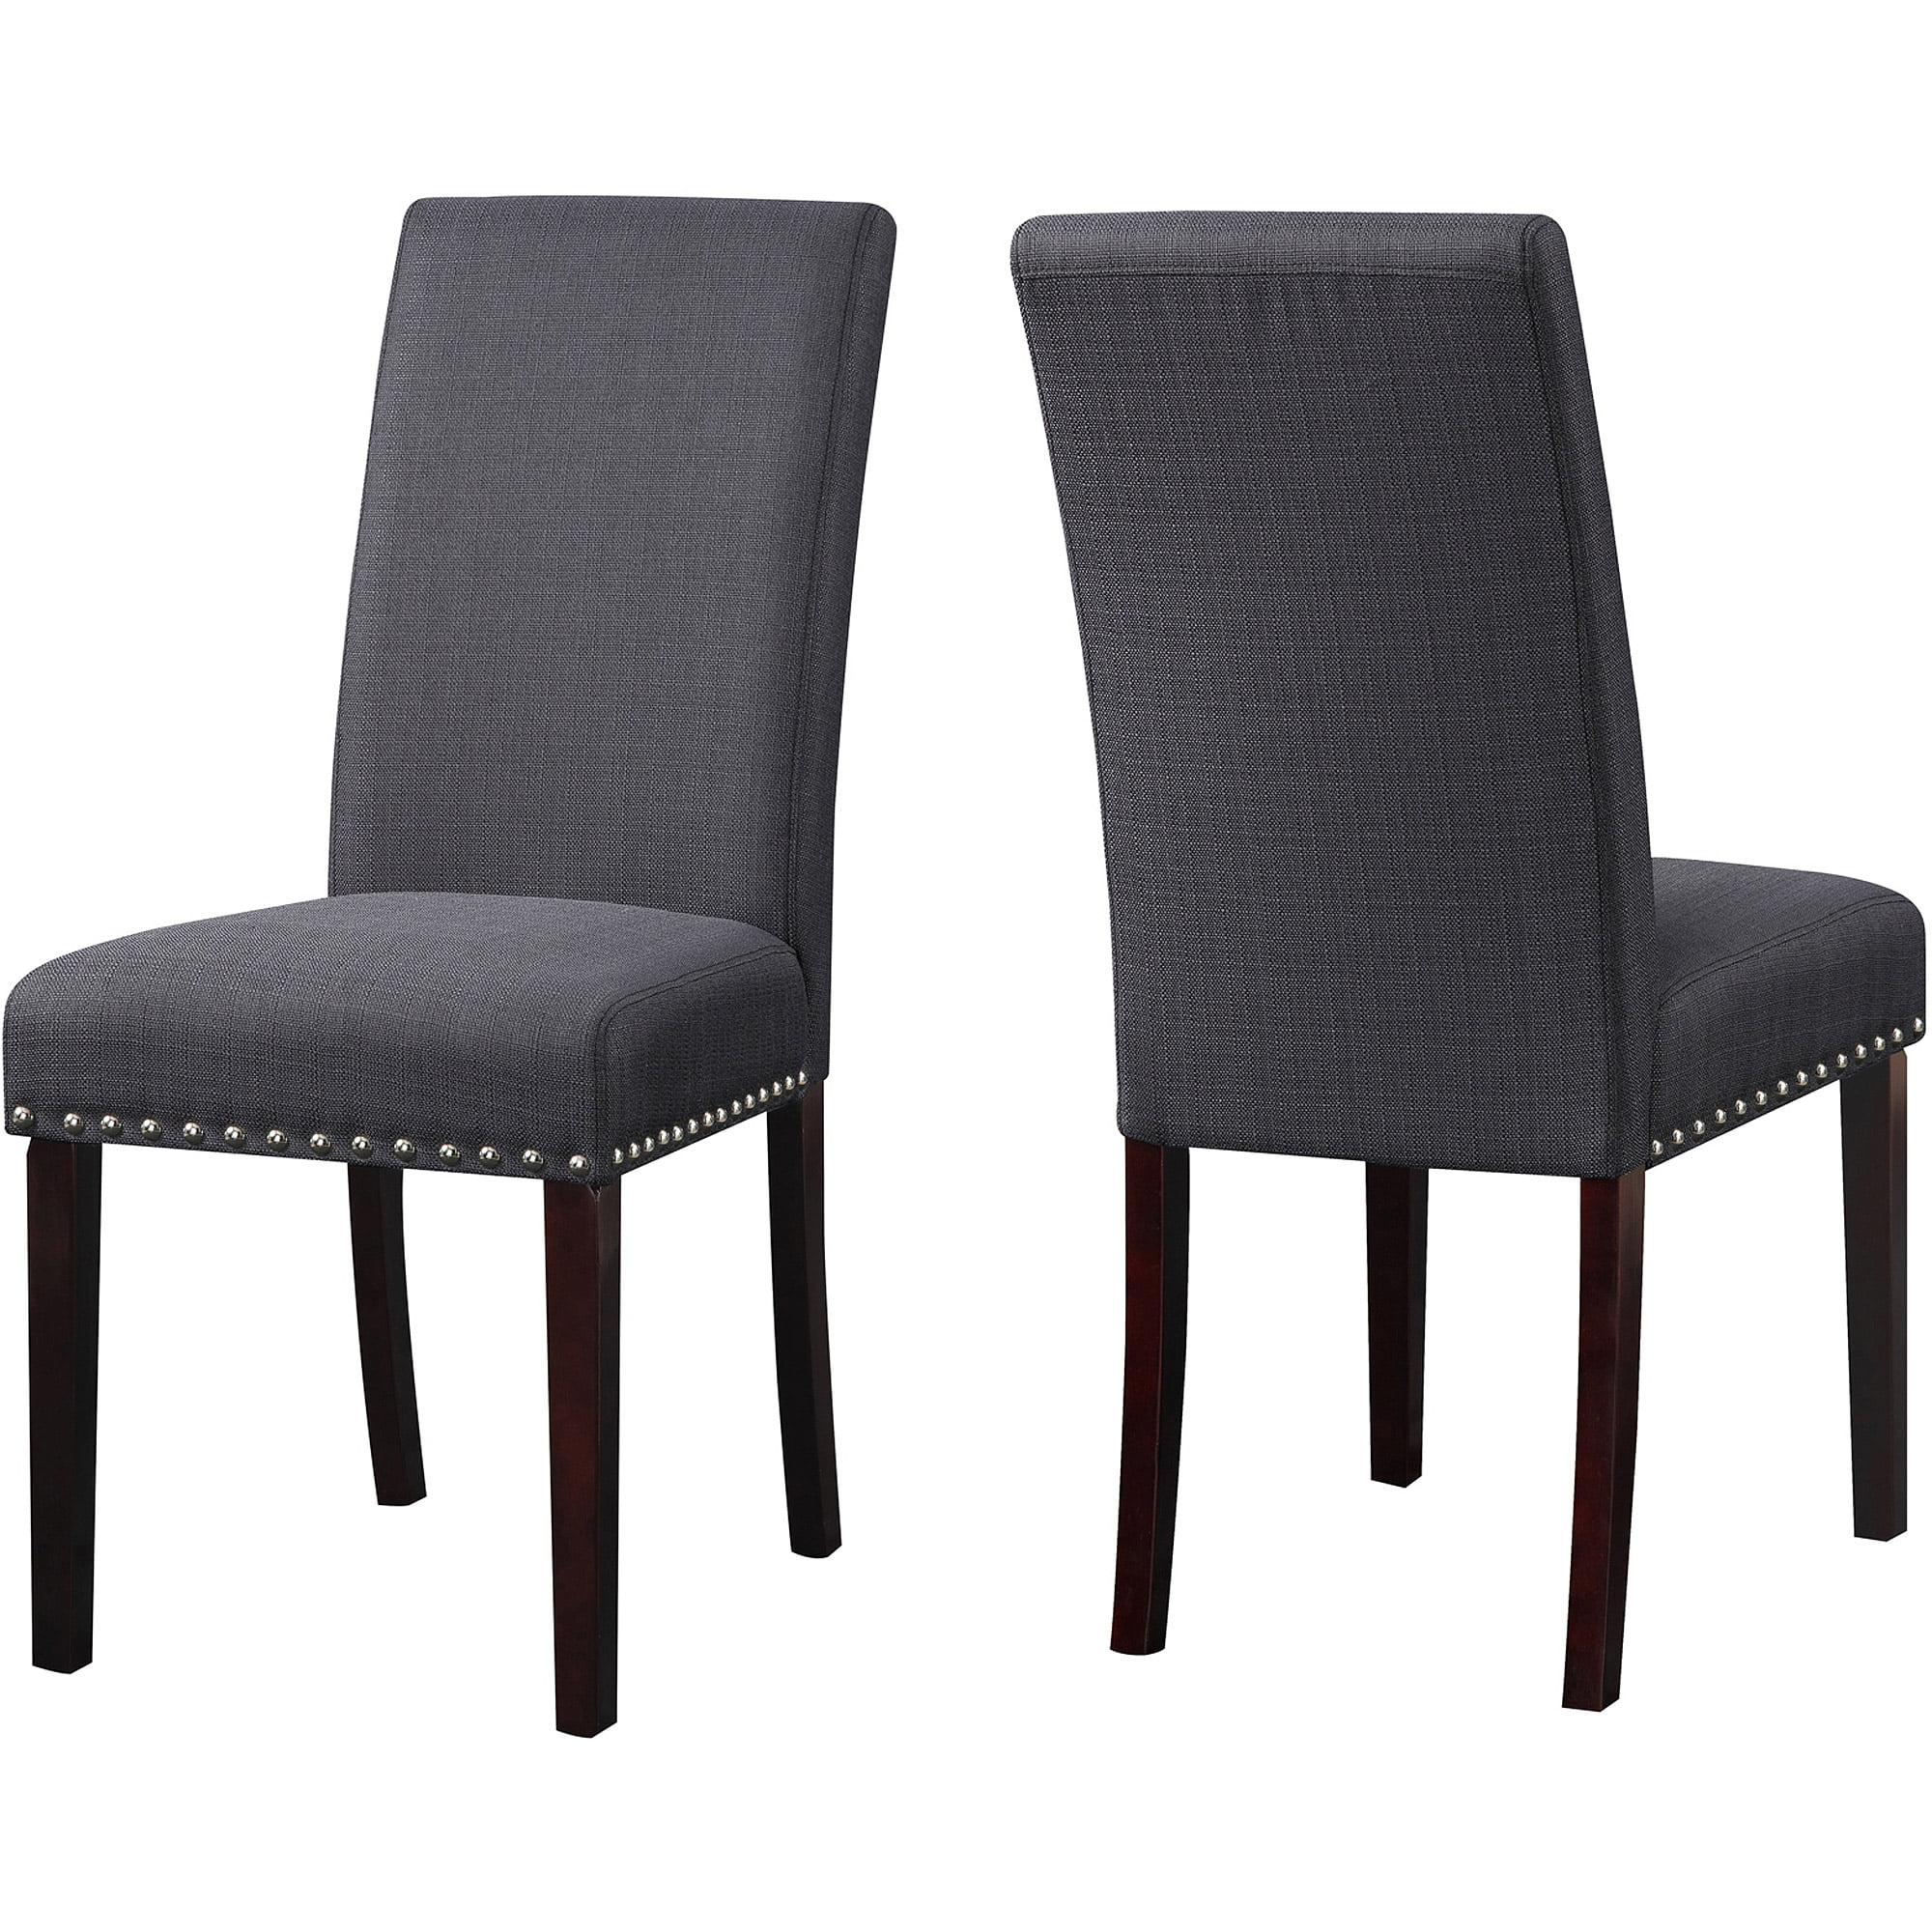 DHI Nice Nail Head Upholstered Dining Chair  2 Pack  Multiple Colors     DHI Nice Nail Head Upholstered Dining Chair  2 Pack  Multiple Colors    Walmart com